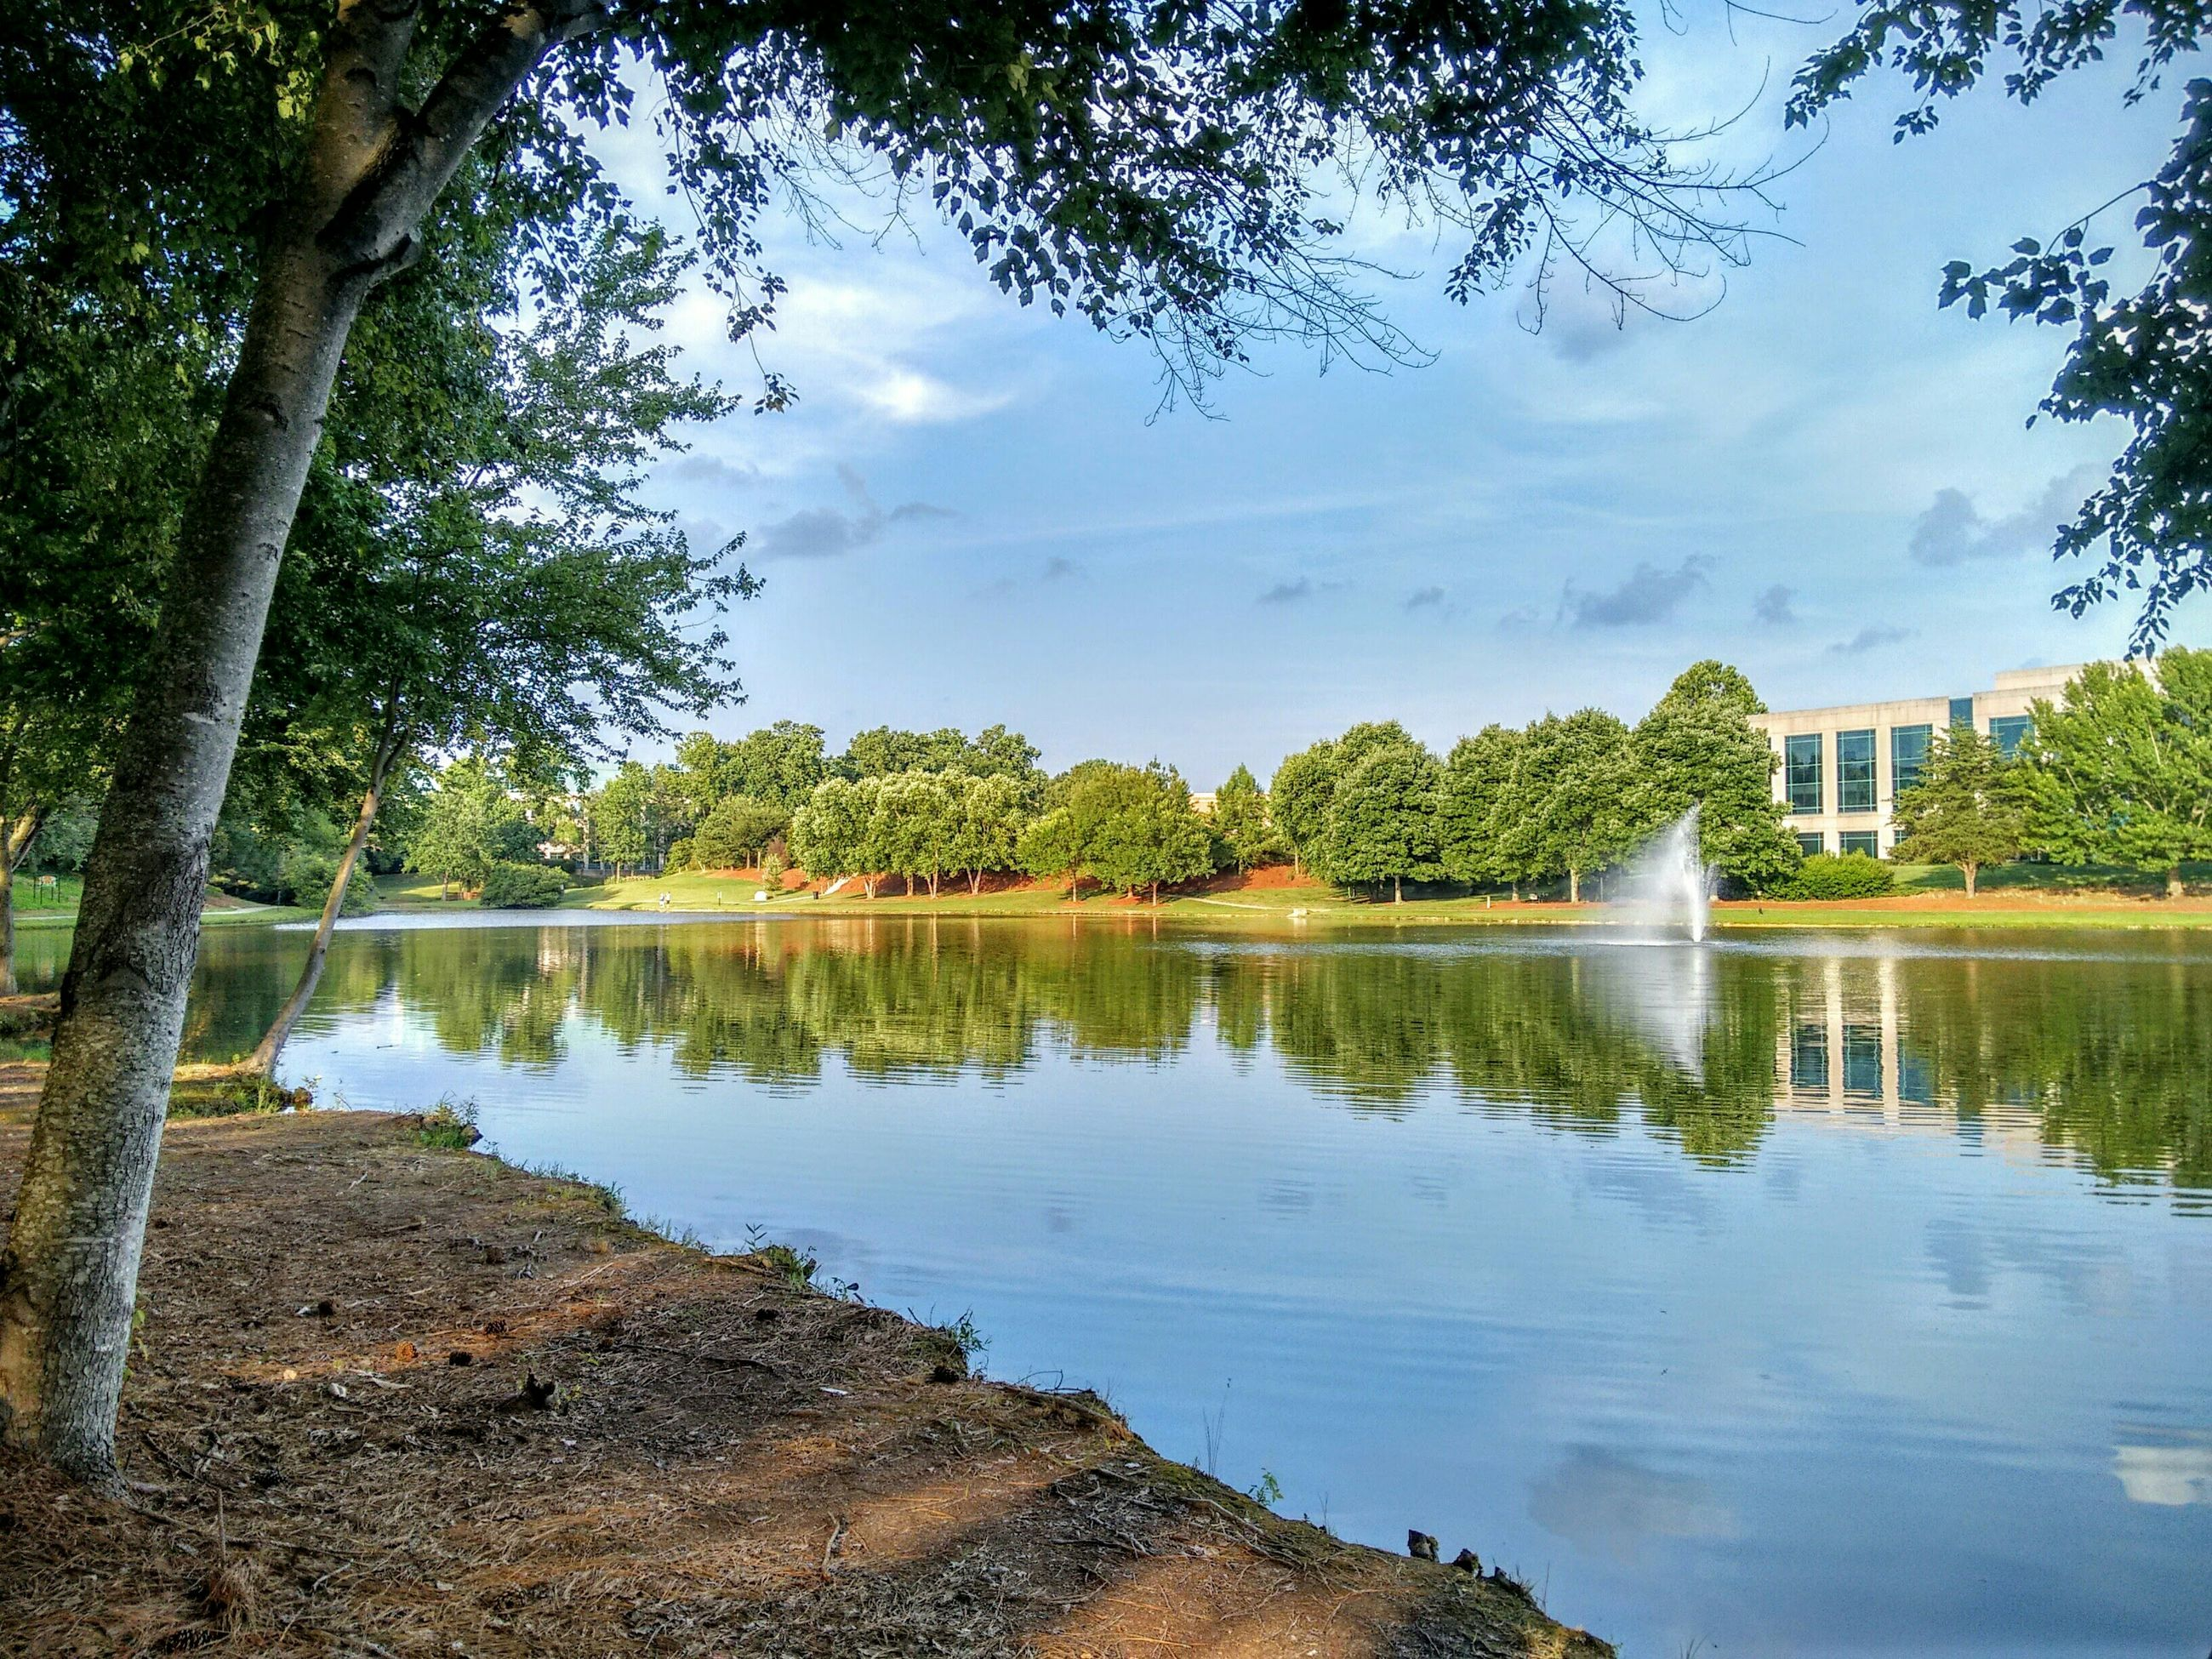 tree, water, reflection, architecture, built structure, lake, building exterior, sky, growth, scenics, tranquility, tranquil scene, nature, day, outdoors, beauty in nature, cloud - sky, no people, vacations, majestic